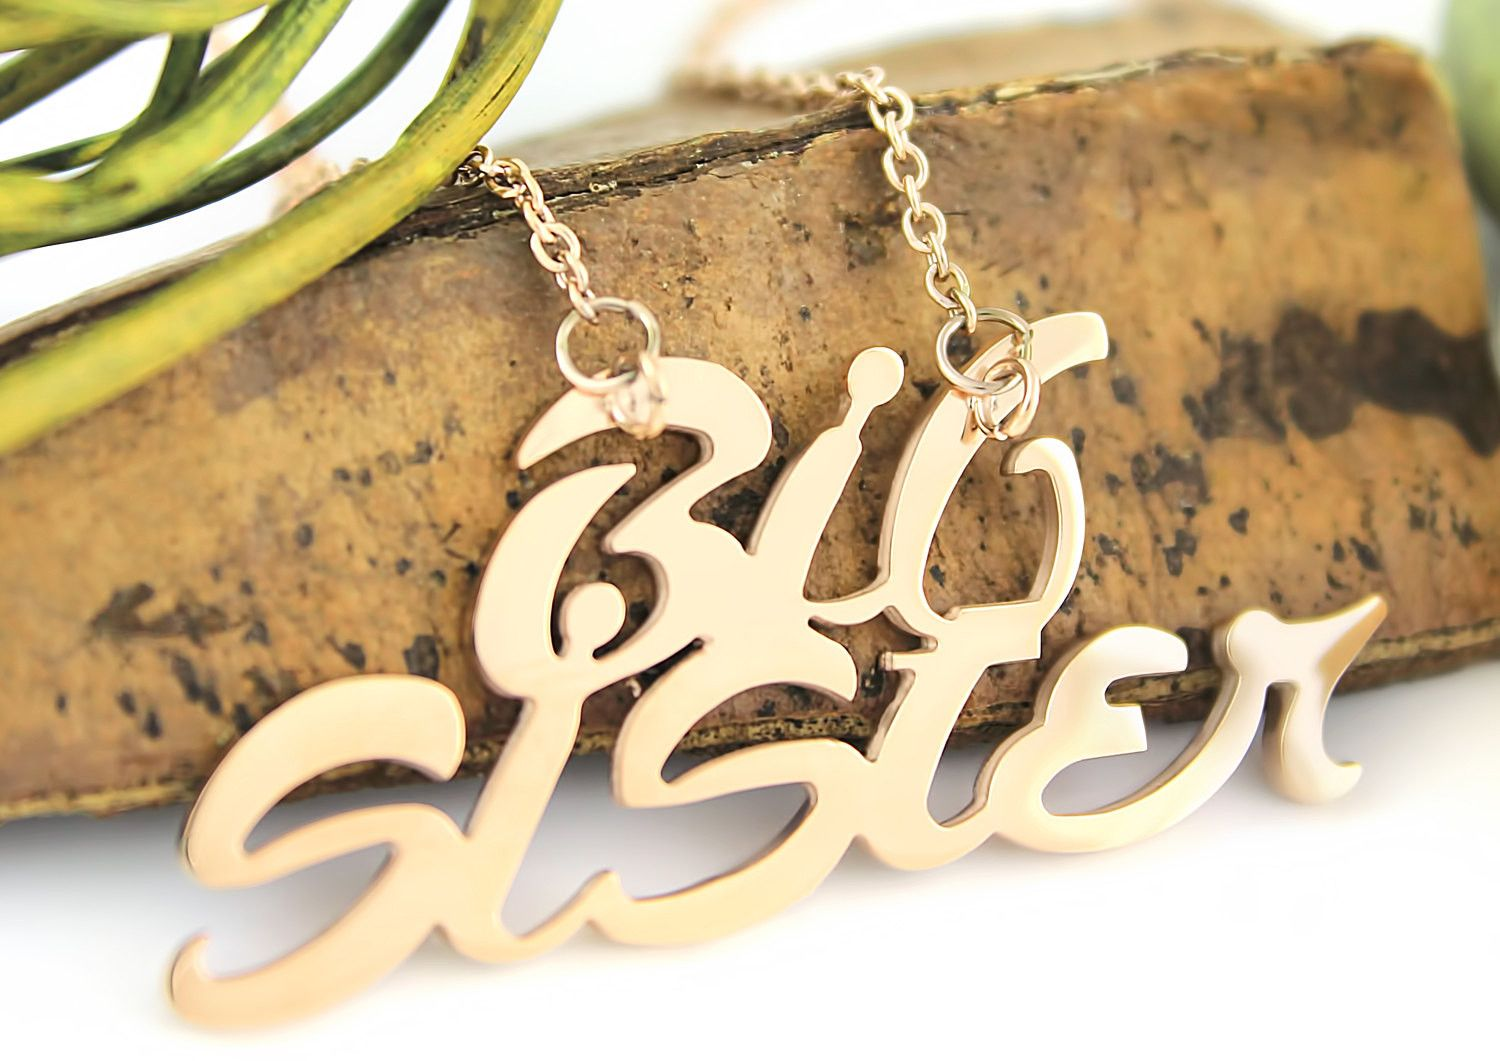 Sister necklace big sister gold tone necklace monogram pendant